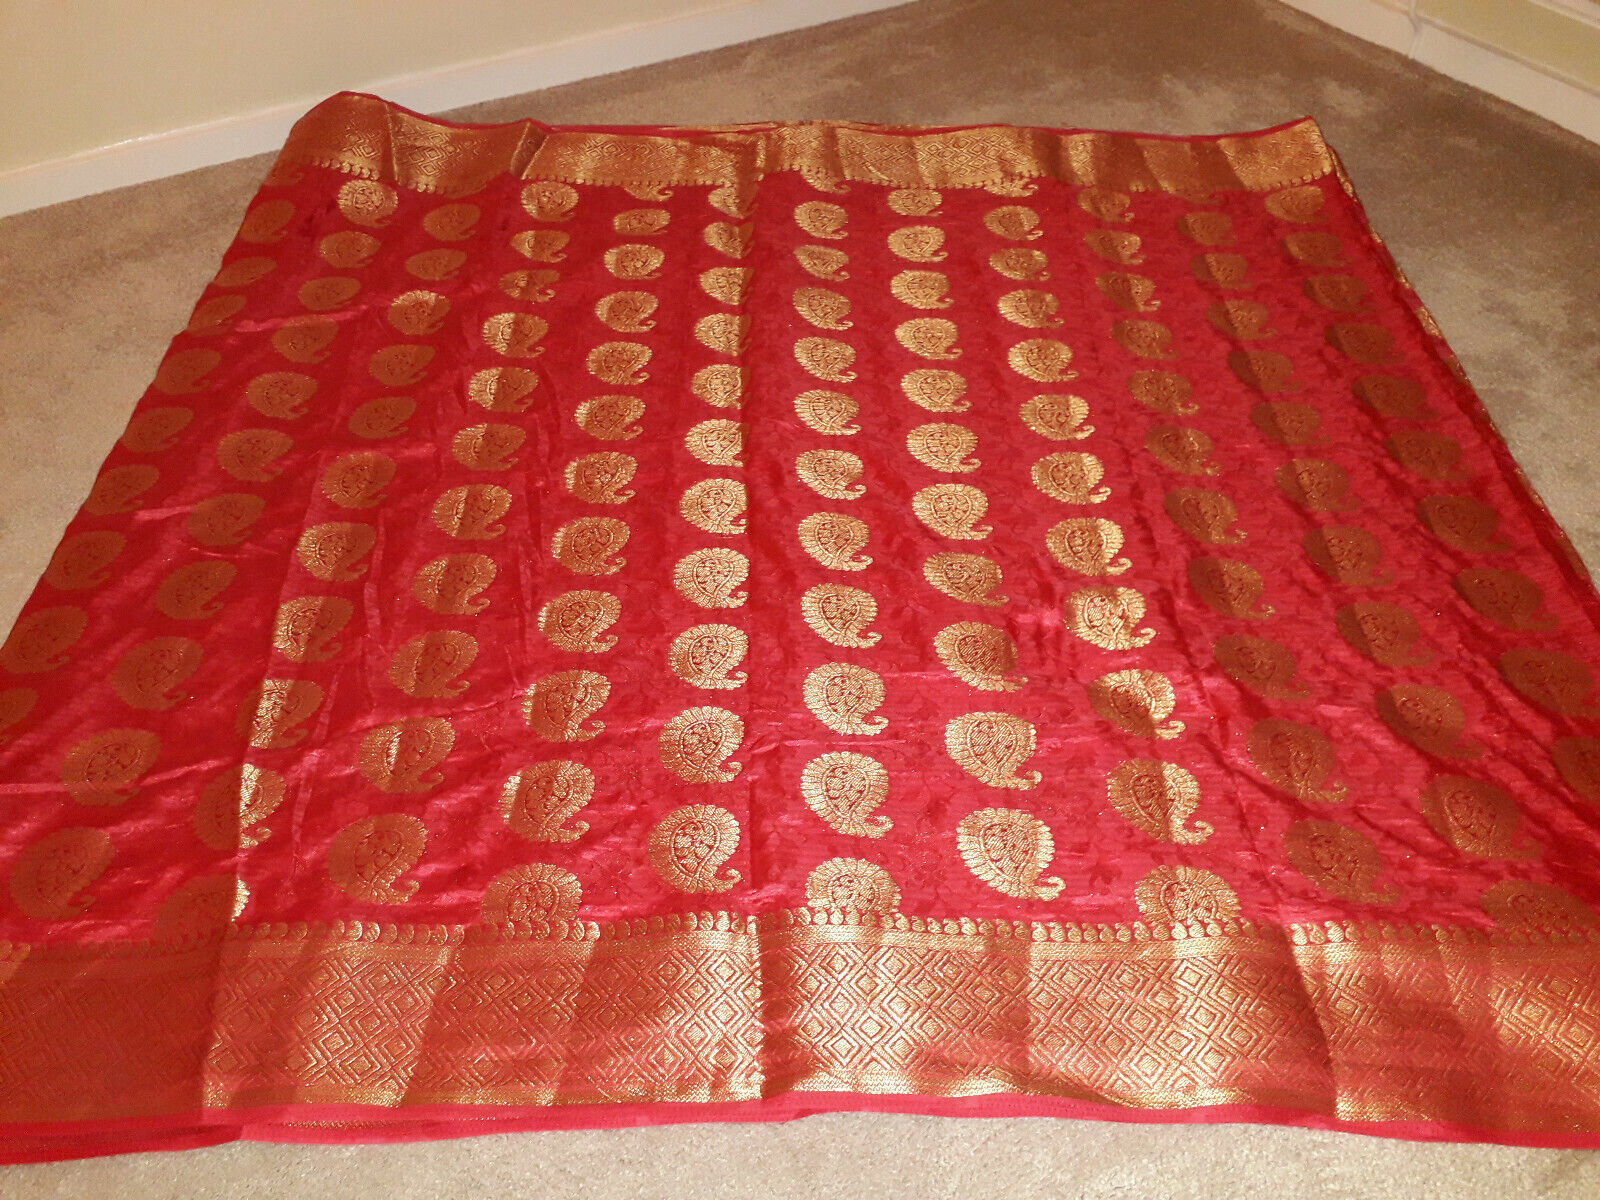 Pink Coloured Saree with gold khattan patterns (Matching blouse provided)